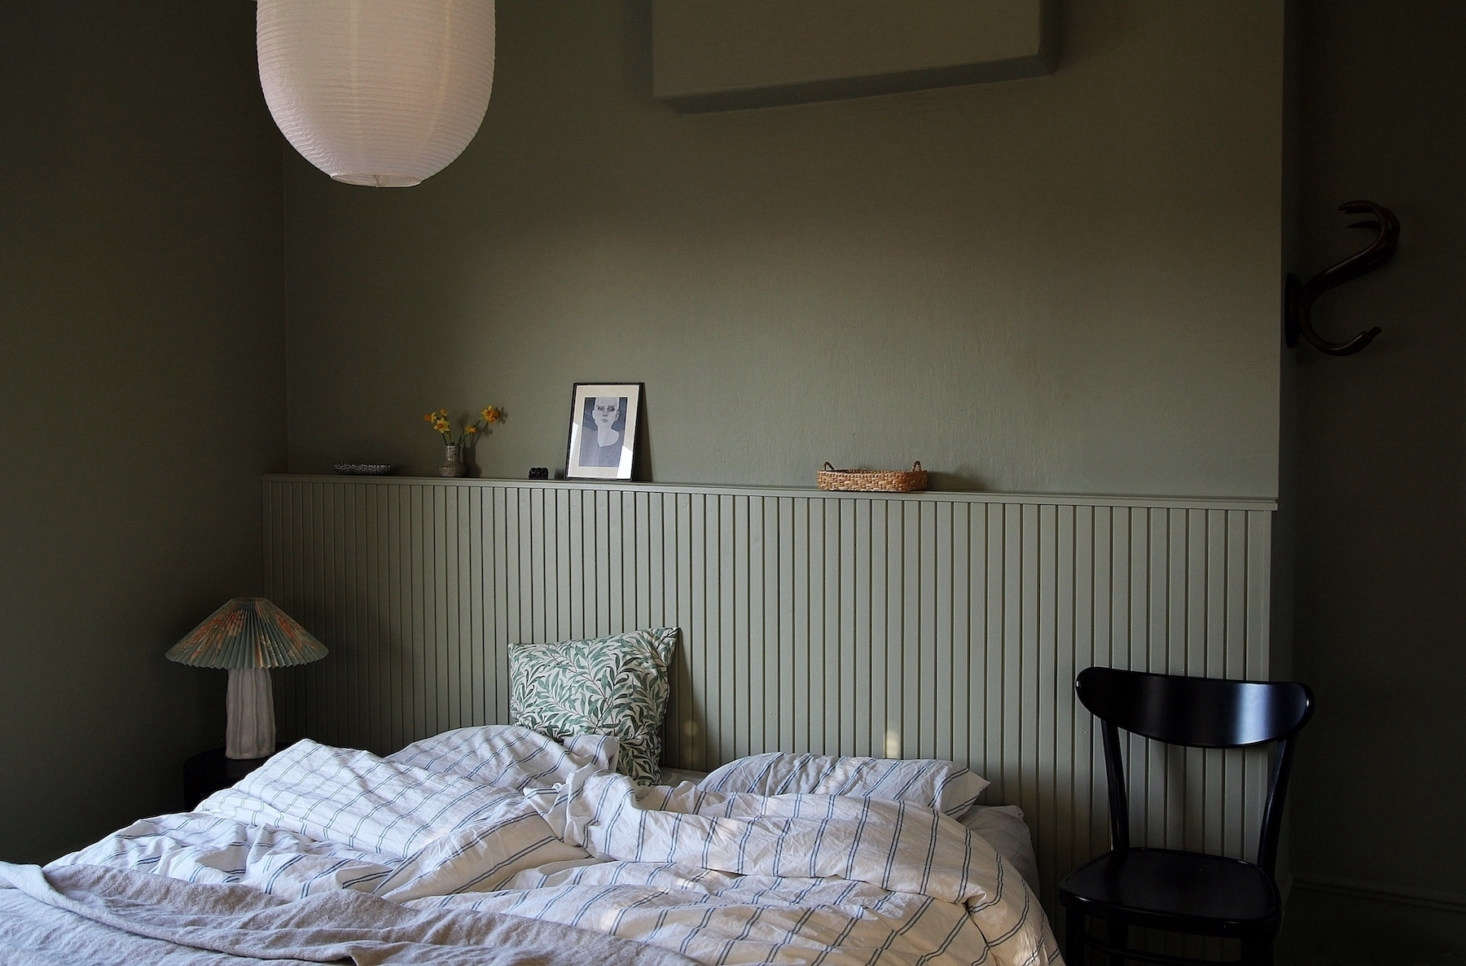 Who needs a headboard when you can have a ledged wall as stylish as this one in your bedroom? Learn how to replicate it in DIY Paneled Wood Headboard: A Finnish Blogger's Clever Bedroom Upgrade. Photograph by Maiju Saha (@maiju_saw), courtesy of theMaiju Saw blog.